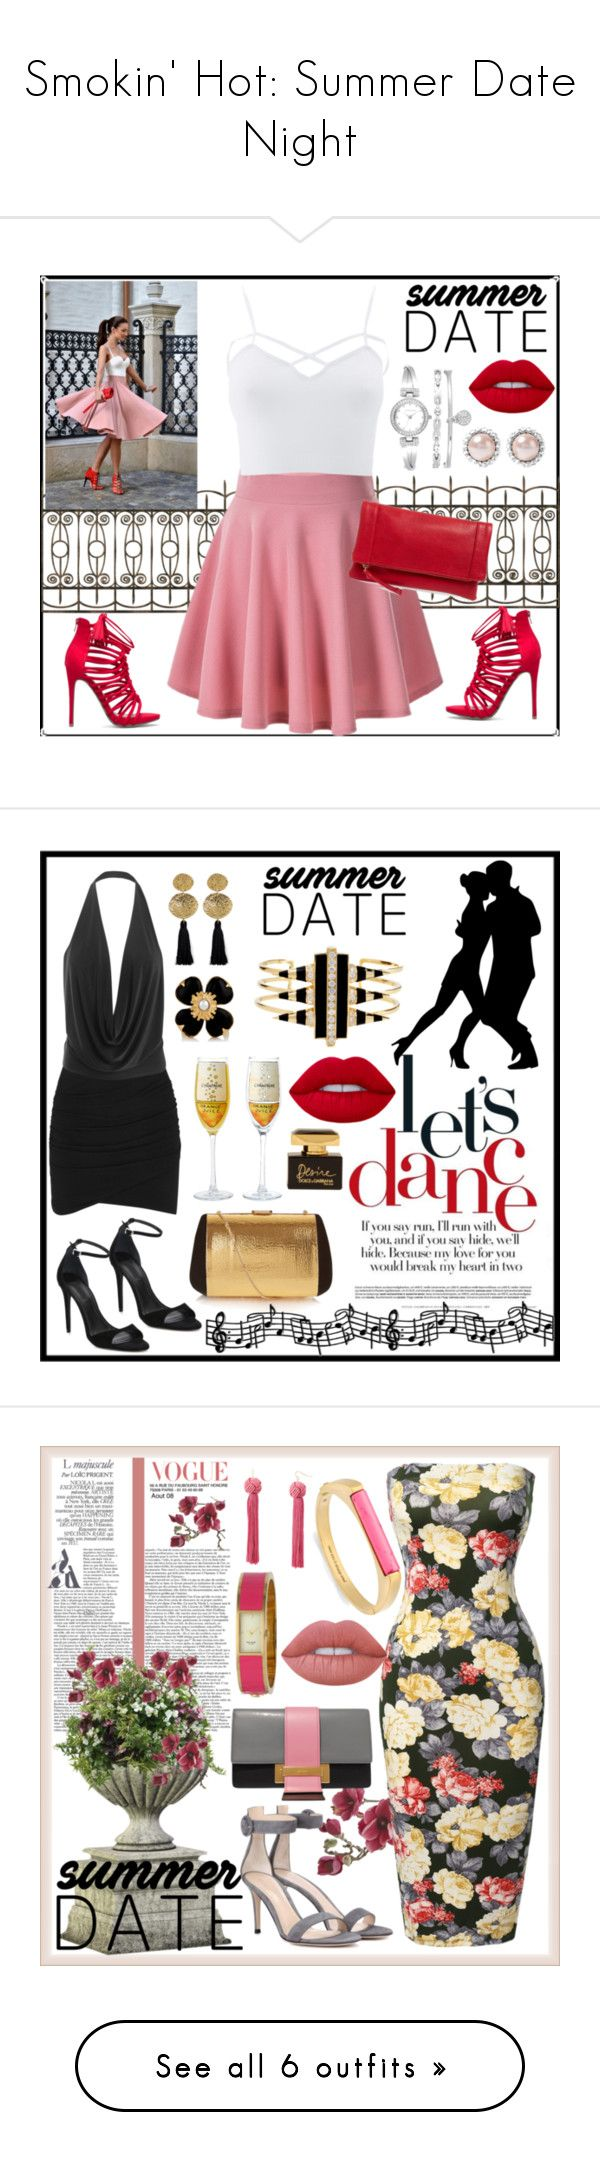 """Smokin' Hot: Summer Date Night"" by terryandjim ❤ liked on Polyvore featuring Sole Society, Charlotte Russe, Anne Klein, Miu Miu, summerdatenight, plus size clothing, James Perse, Nina Ricci, Alexander Wang and Gorjana"